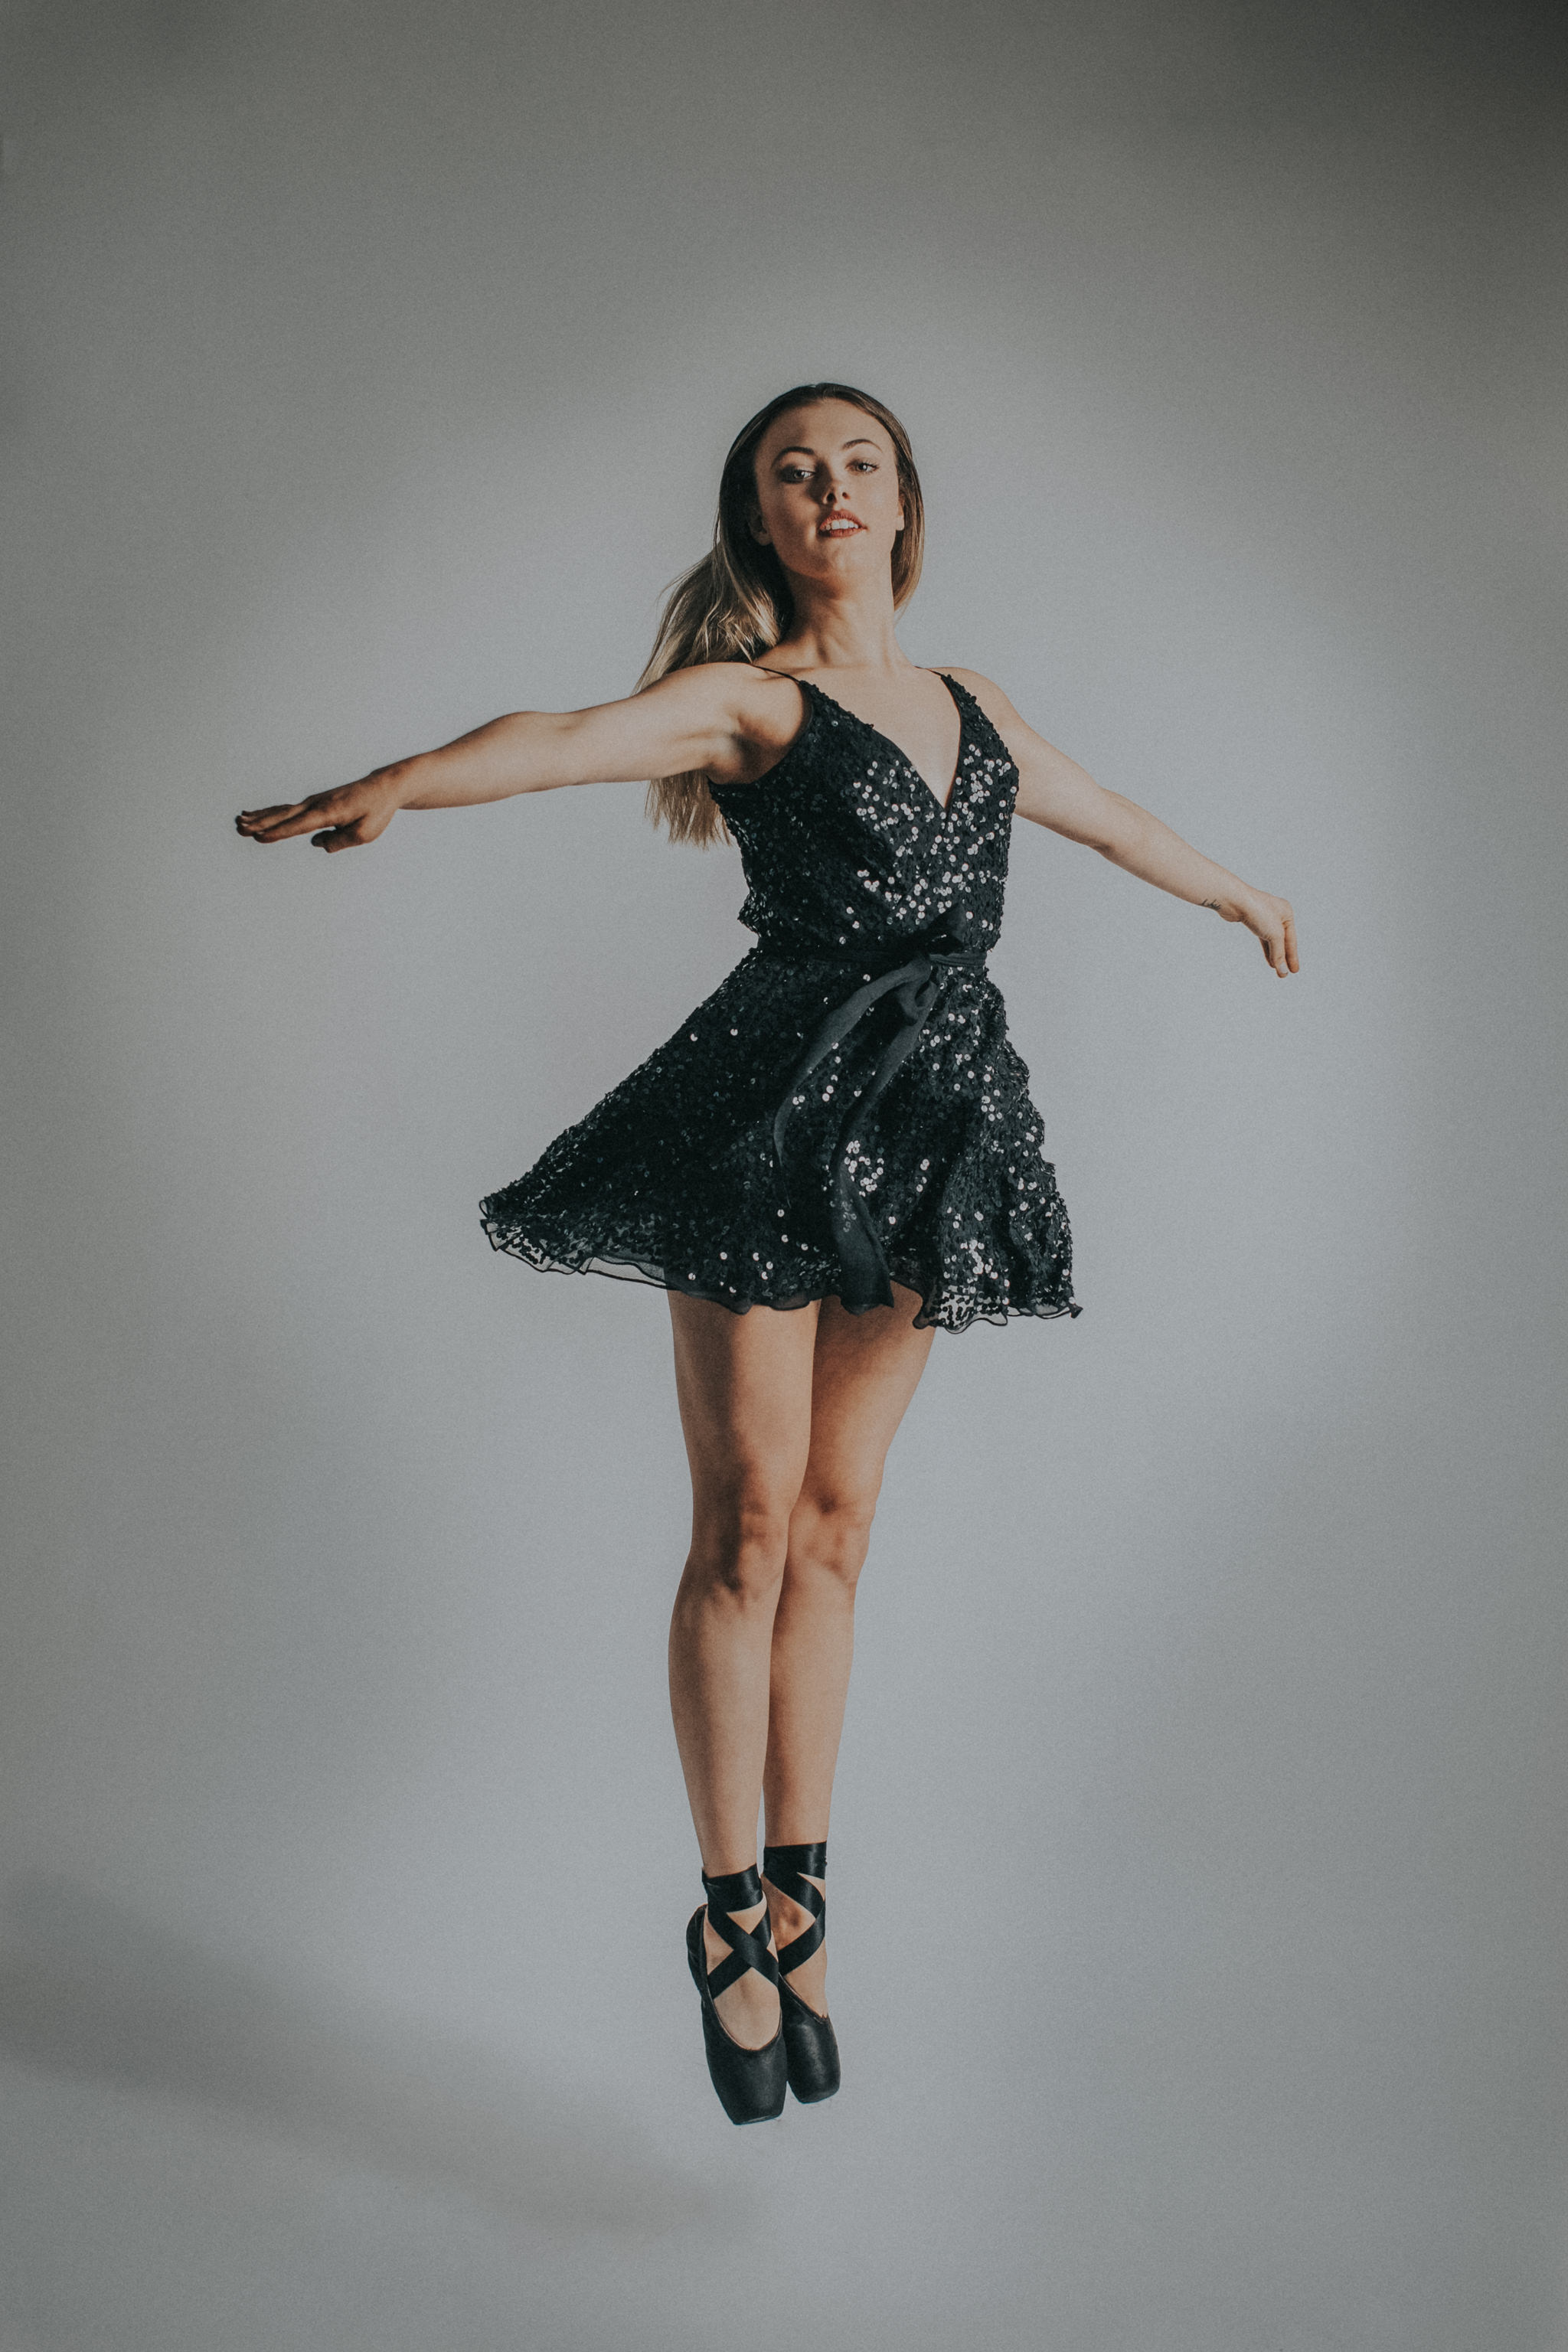 dancer jumps - black dress - ballerina outfit